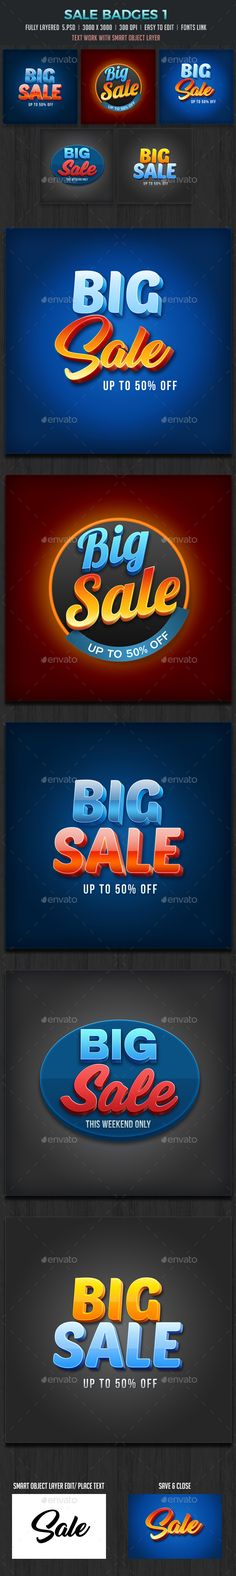 Sale Badges 3D vol1 2000x2000 pixels 300 dpi Main text work with Smart object layer 100 Photoshop Vector layers 5 Fully Layer